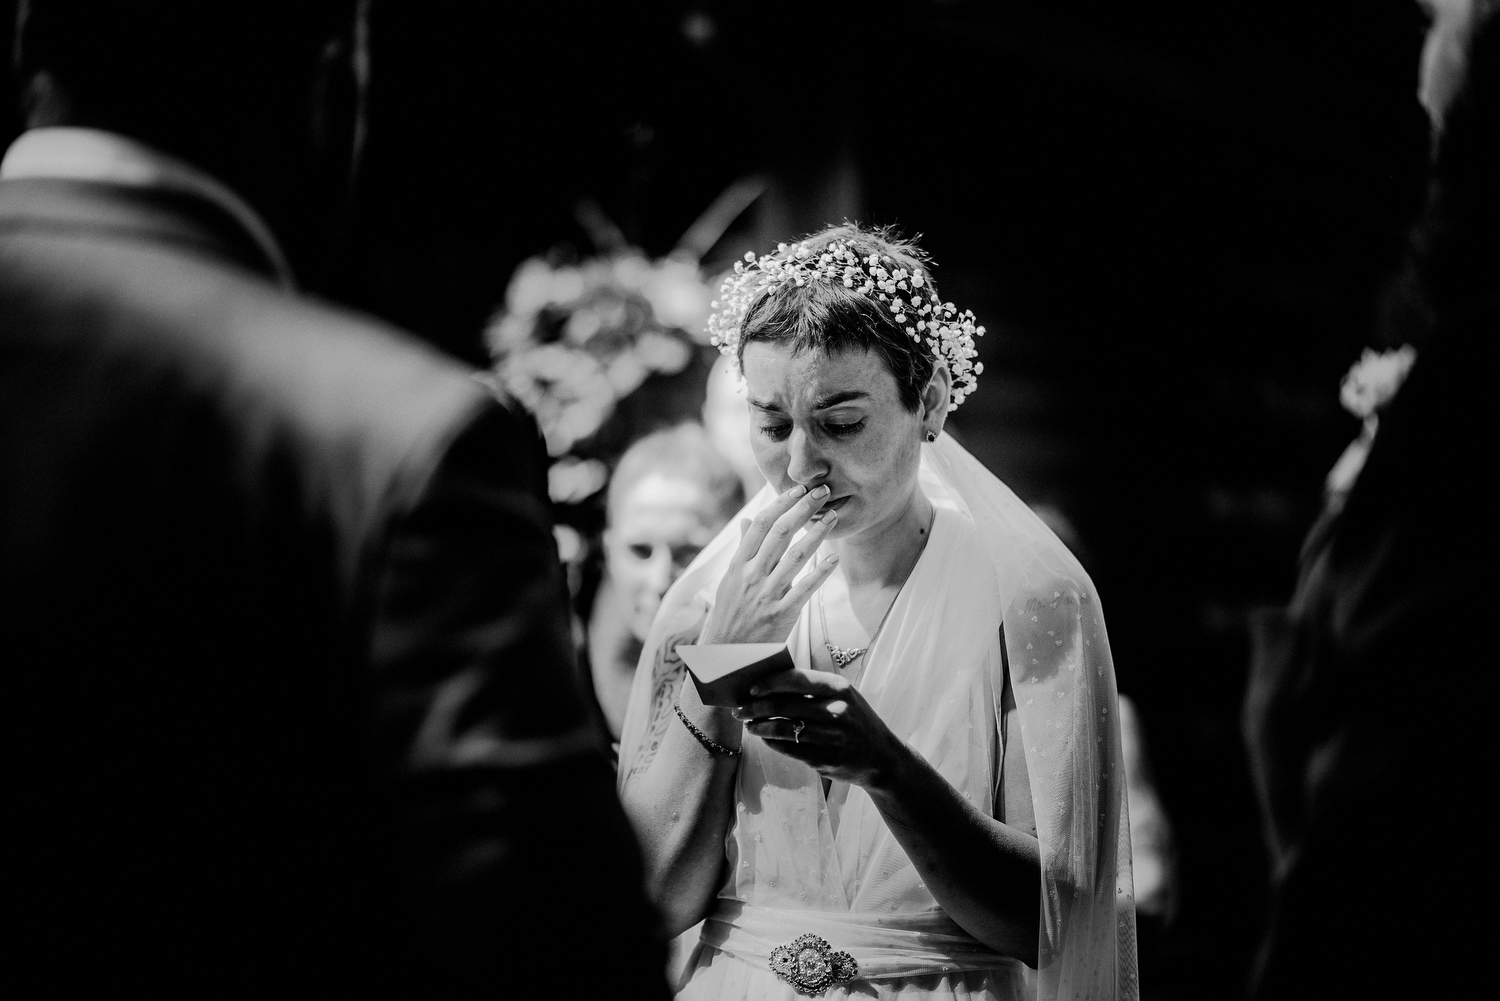 emotional black and white wedding photography during ceremony